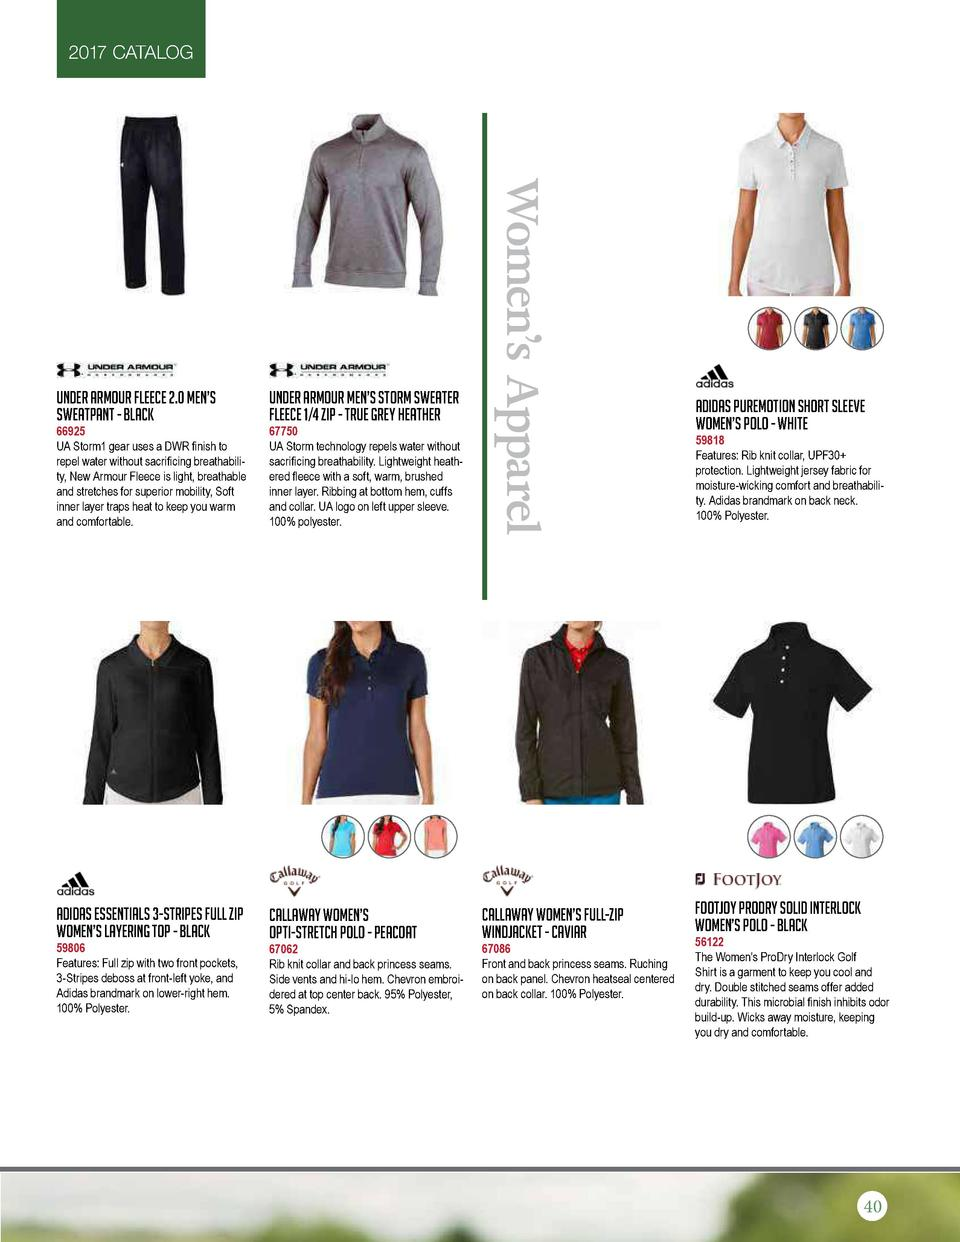 2017 CATALOG  66925 UA Storm1 gear uses a DWR finish to repel water without sacrificing breathability, New Armour Fleece i...